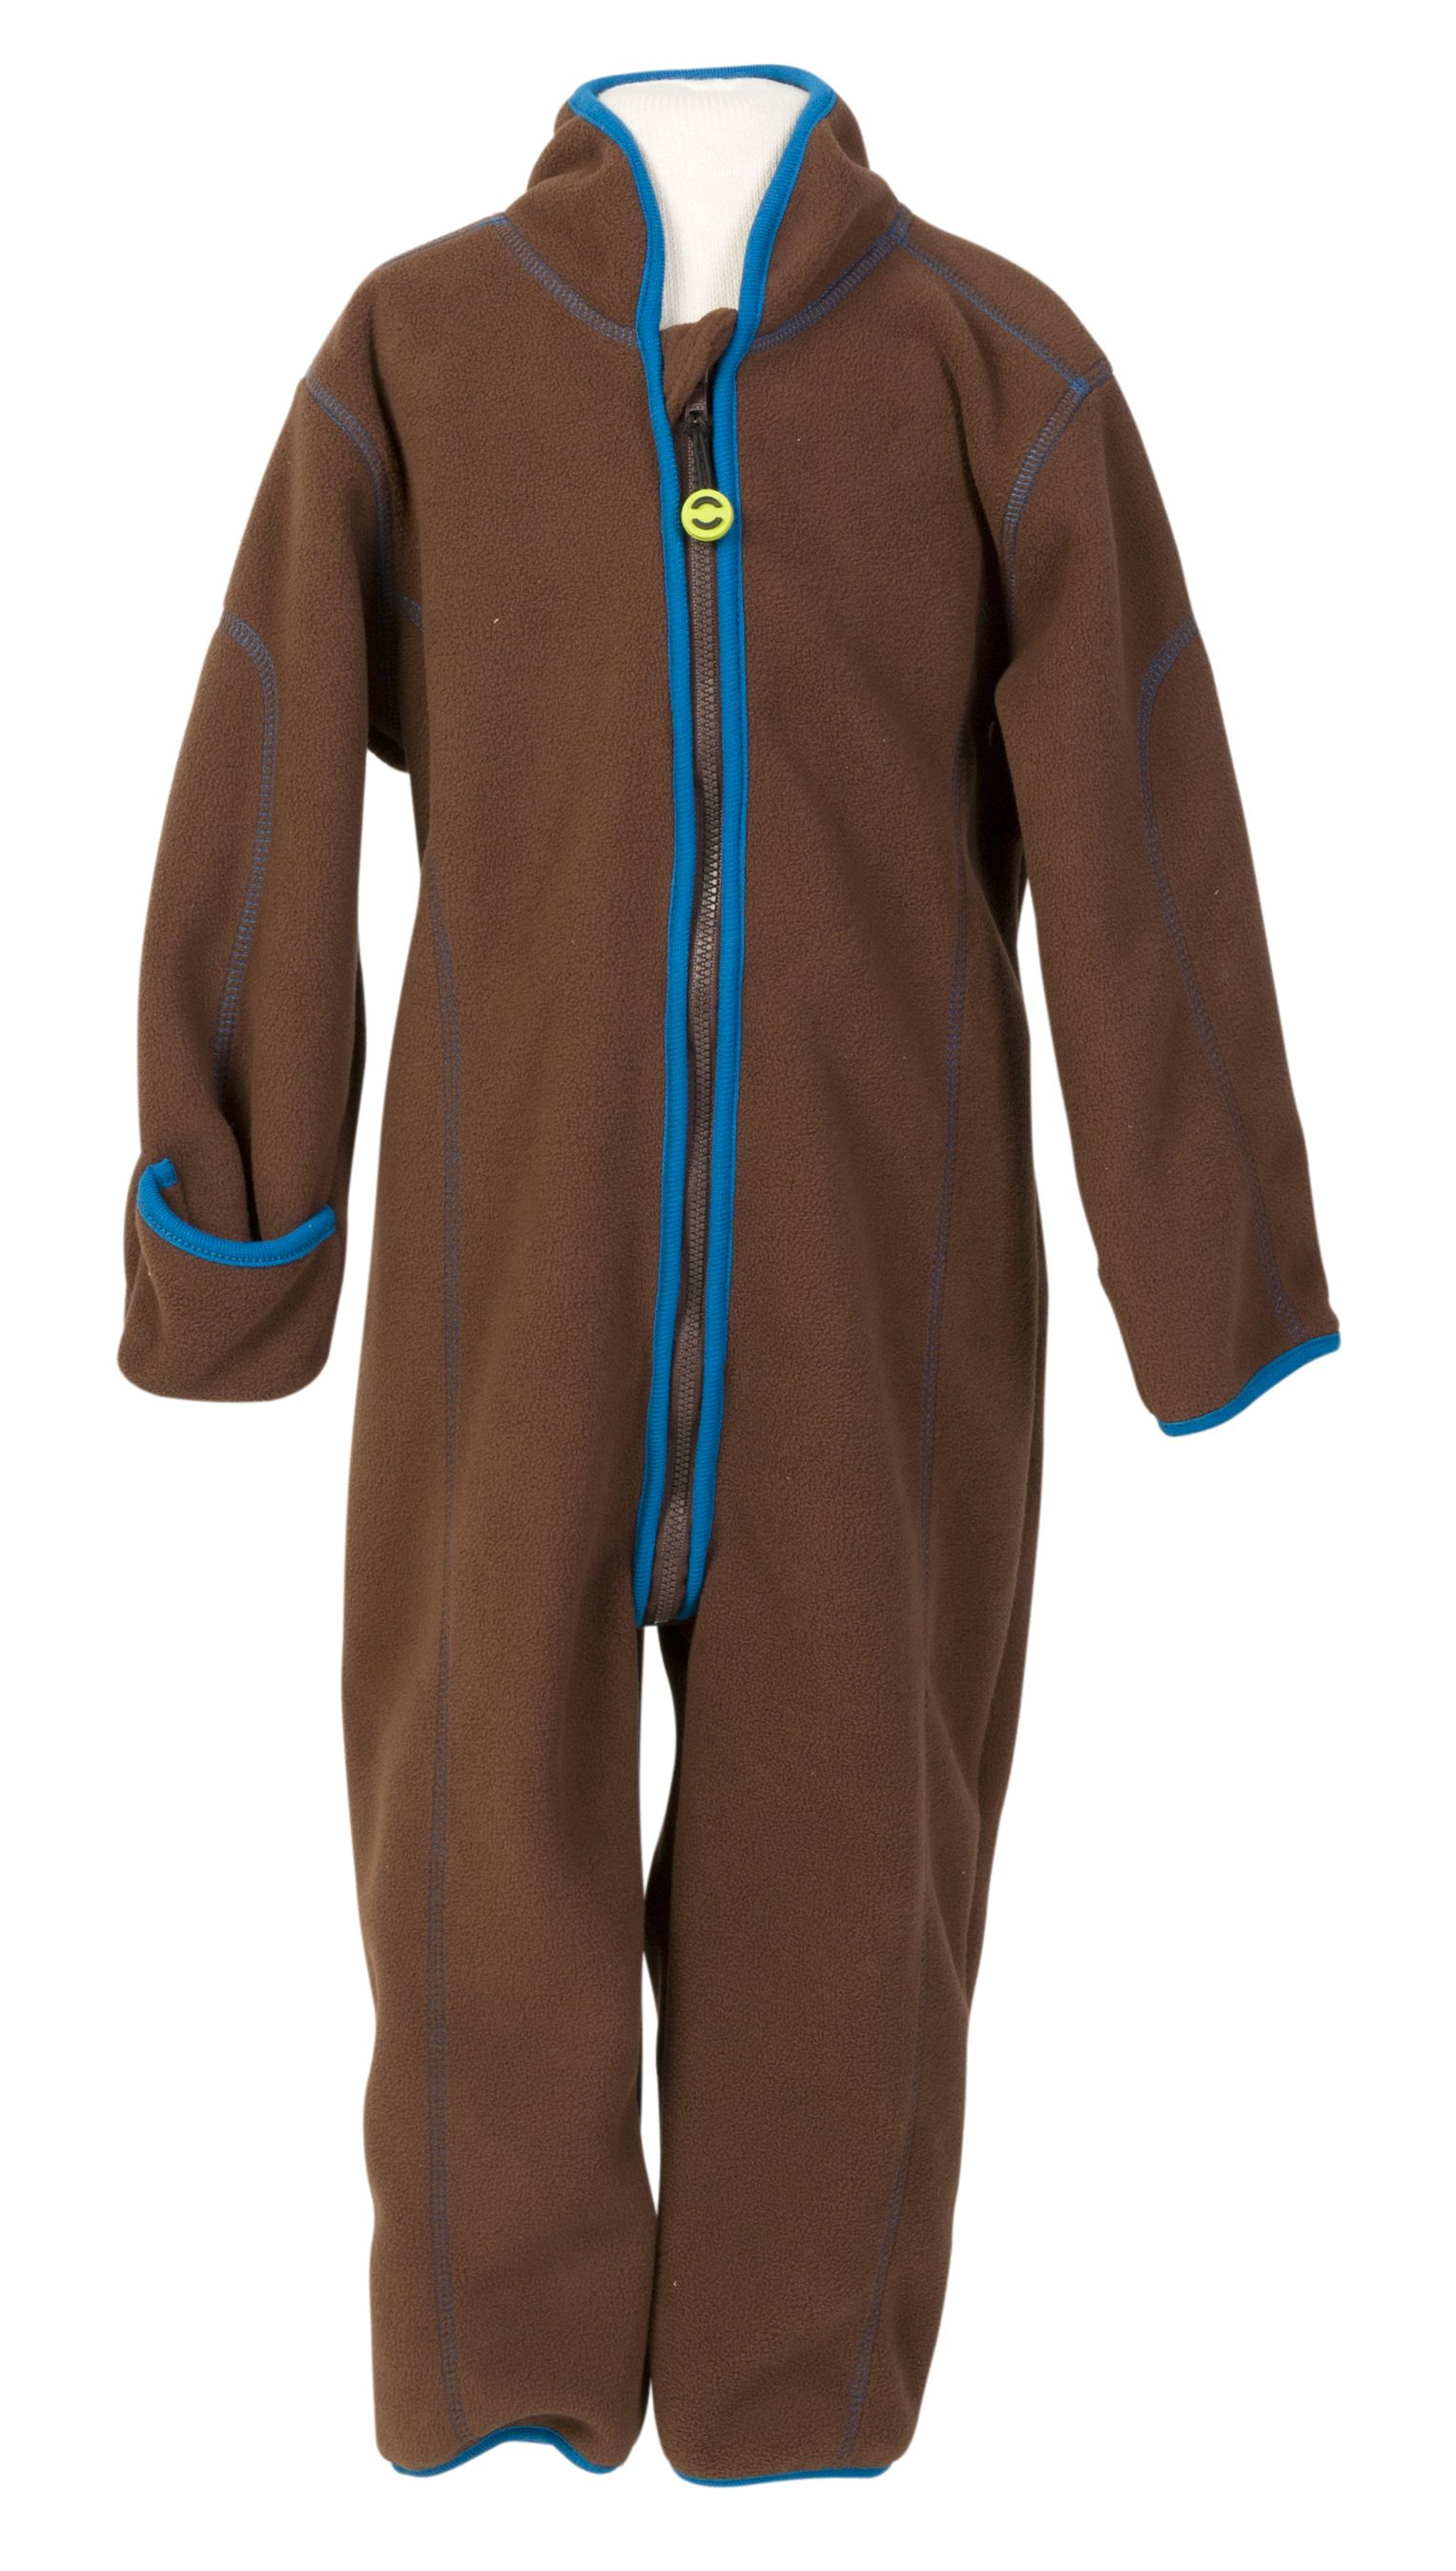 Image of Double fleece dragt fra Mikk-Line - Chestnut (2102-475)